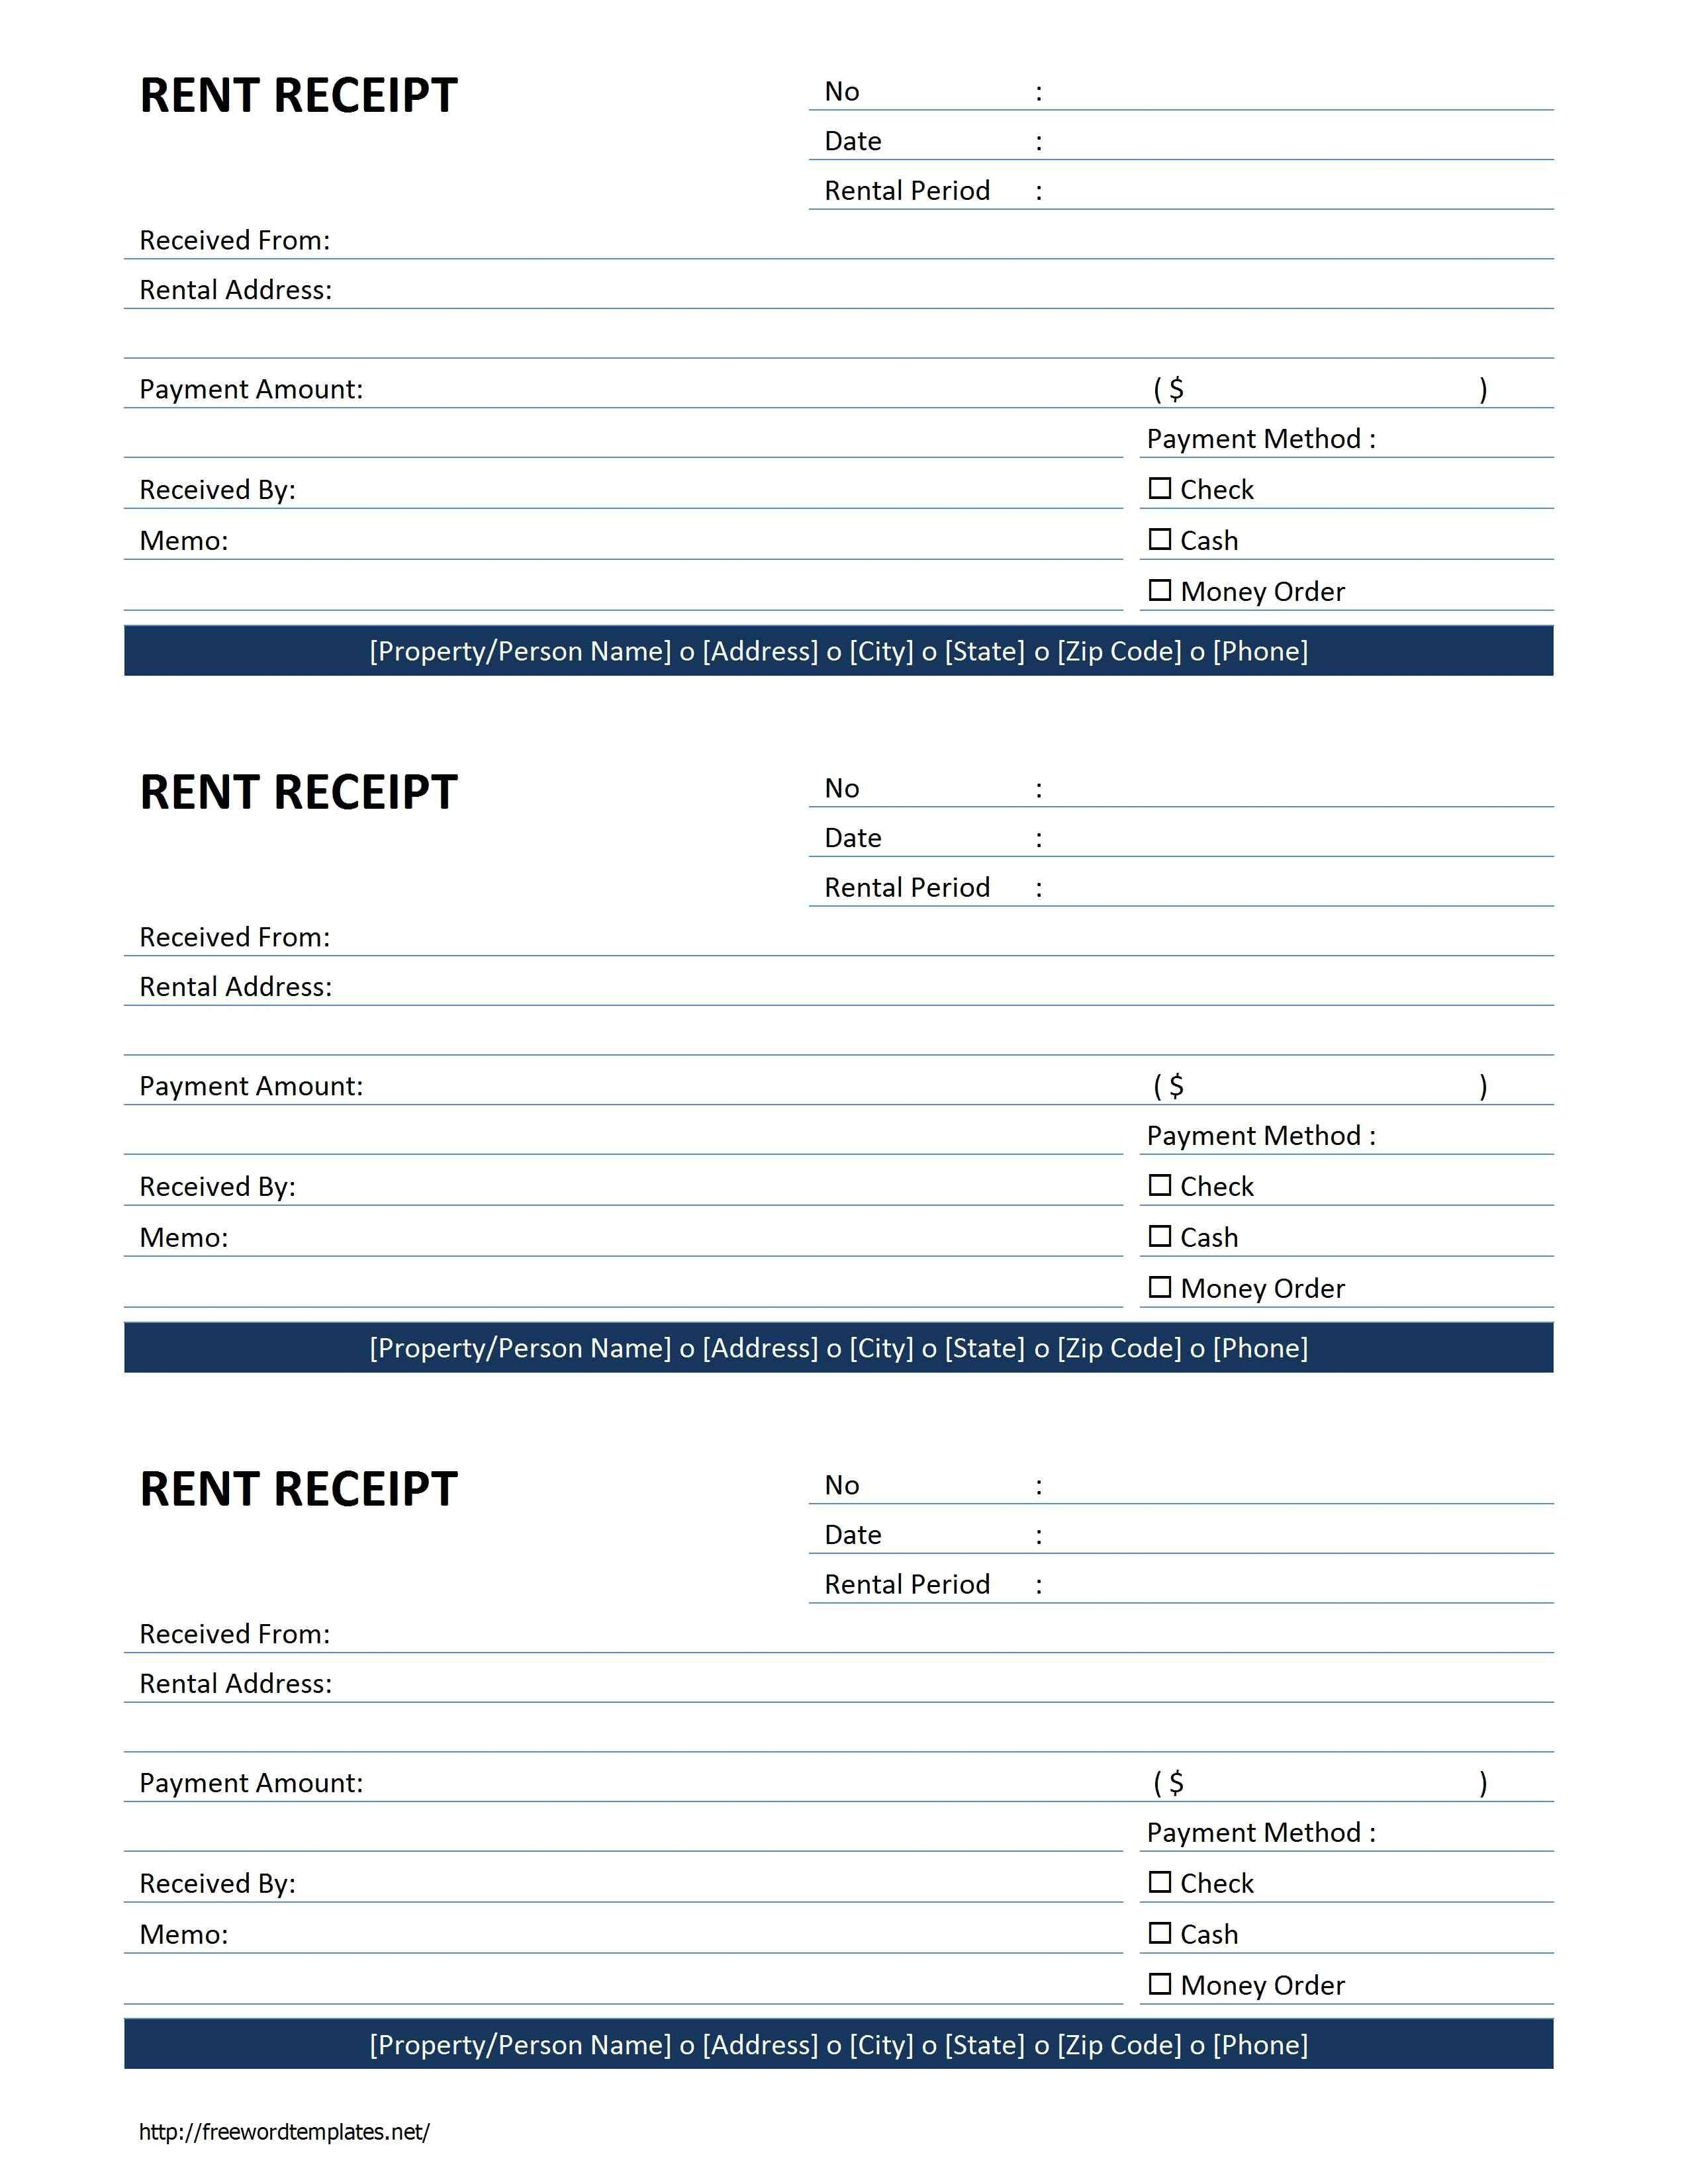 Rent Receipt Template  Free Microsoft Word Templates  Free Rent Regarding Invoice Template For Rent